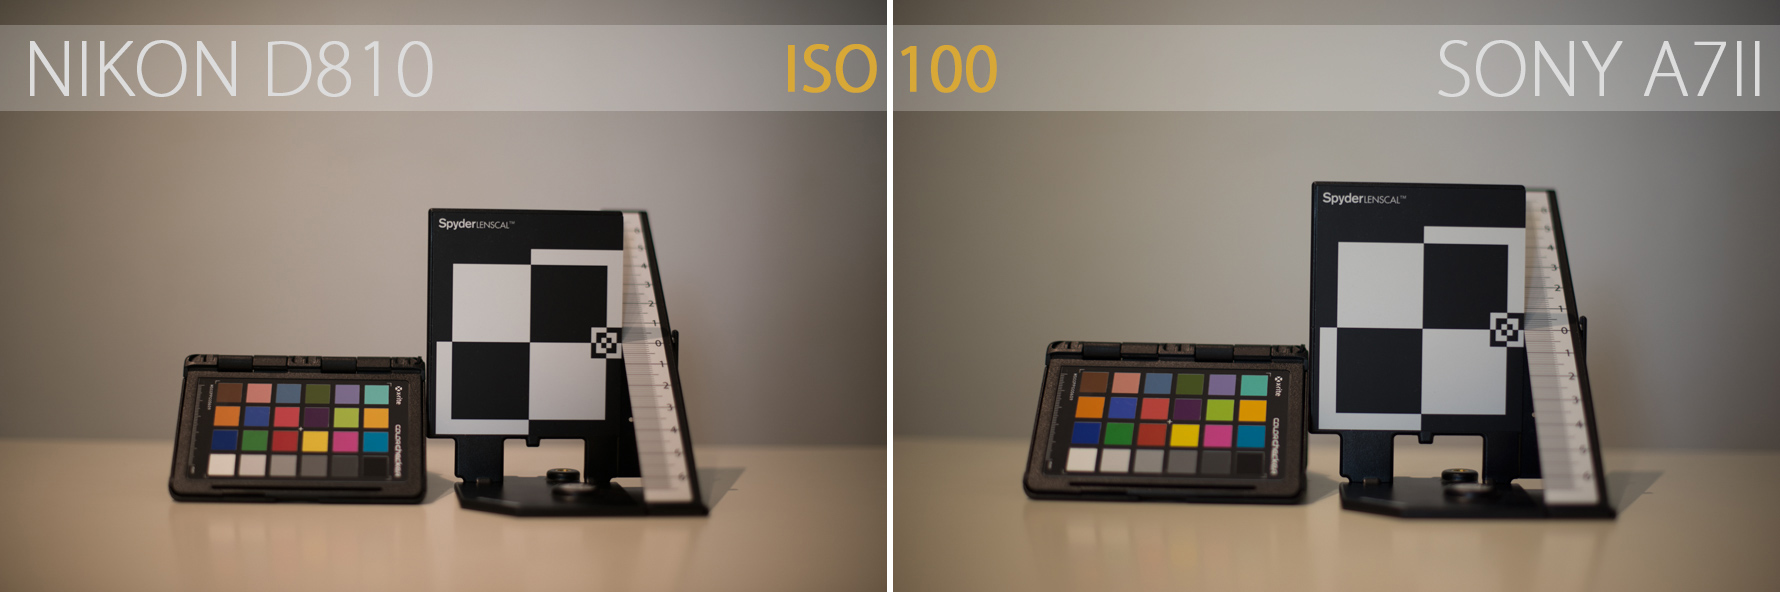 comparison between Nikon D810 and Sony a7II to ISO 100